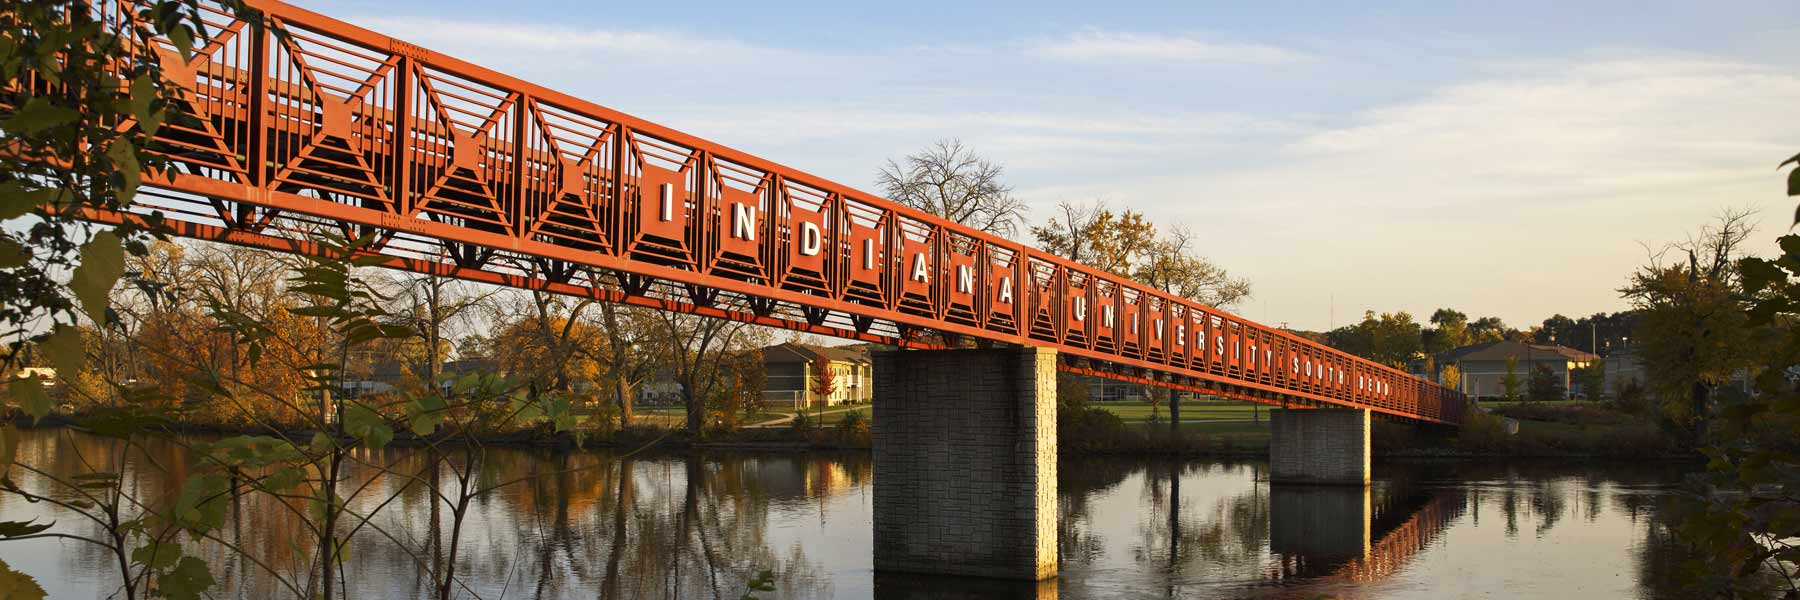 A red metal bridge over a river with Indiana University displayed in white letters.